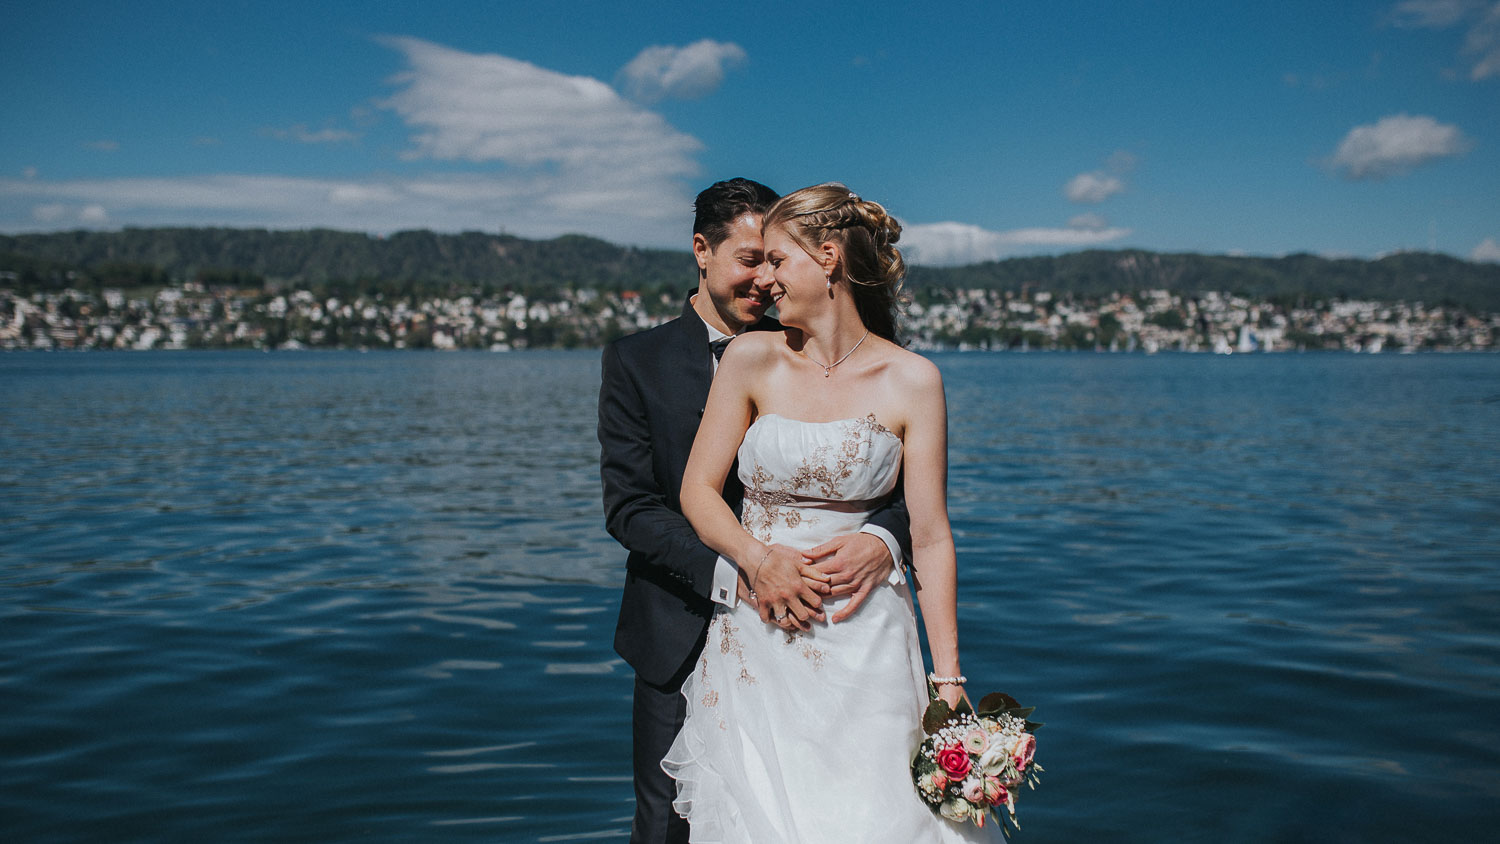 Wedding photographer in Zurich Switzerland